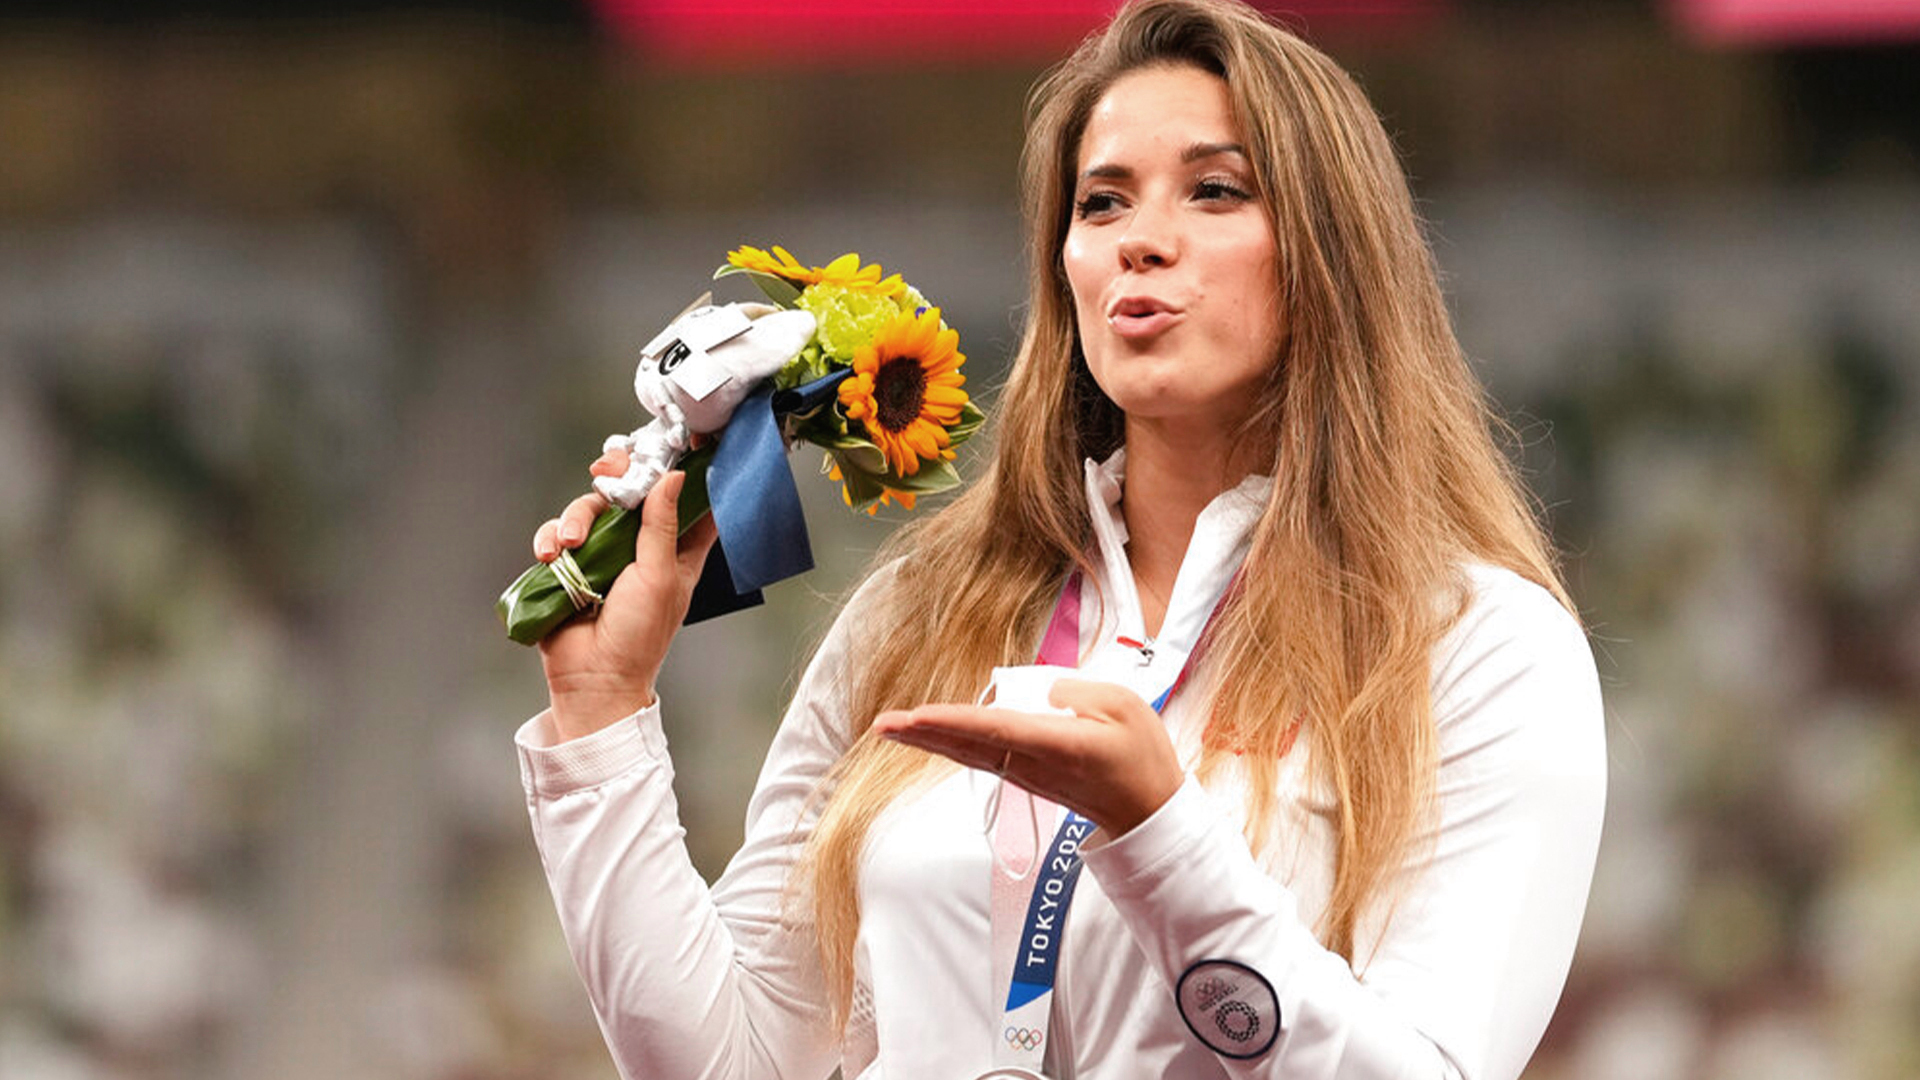 27.08.2021 – Polish Olympian auctions silver medal to pay for infant's heart surgery